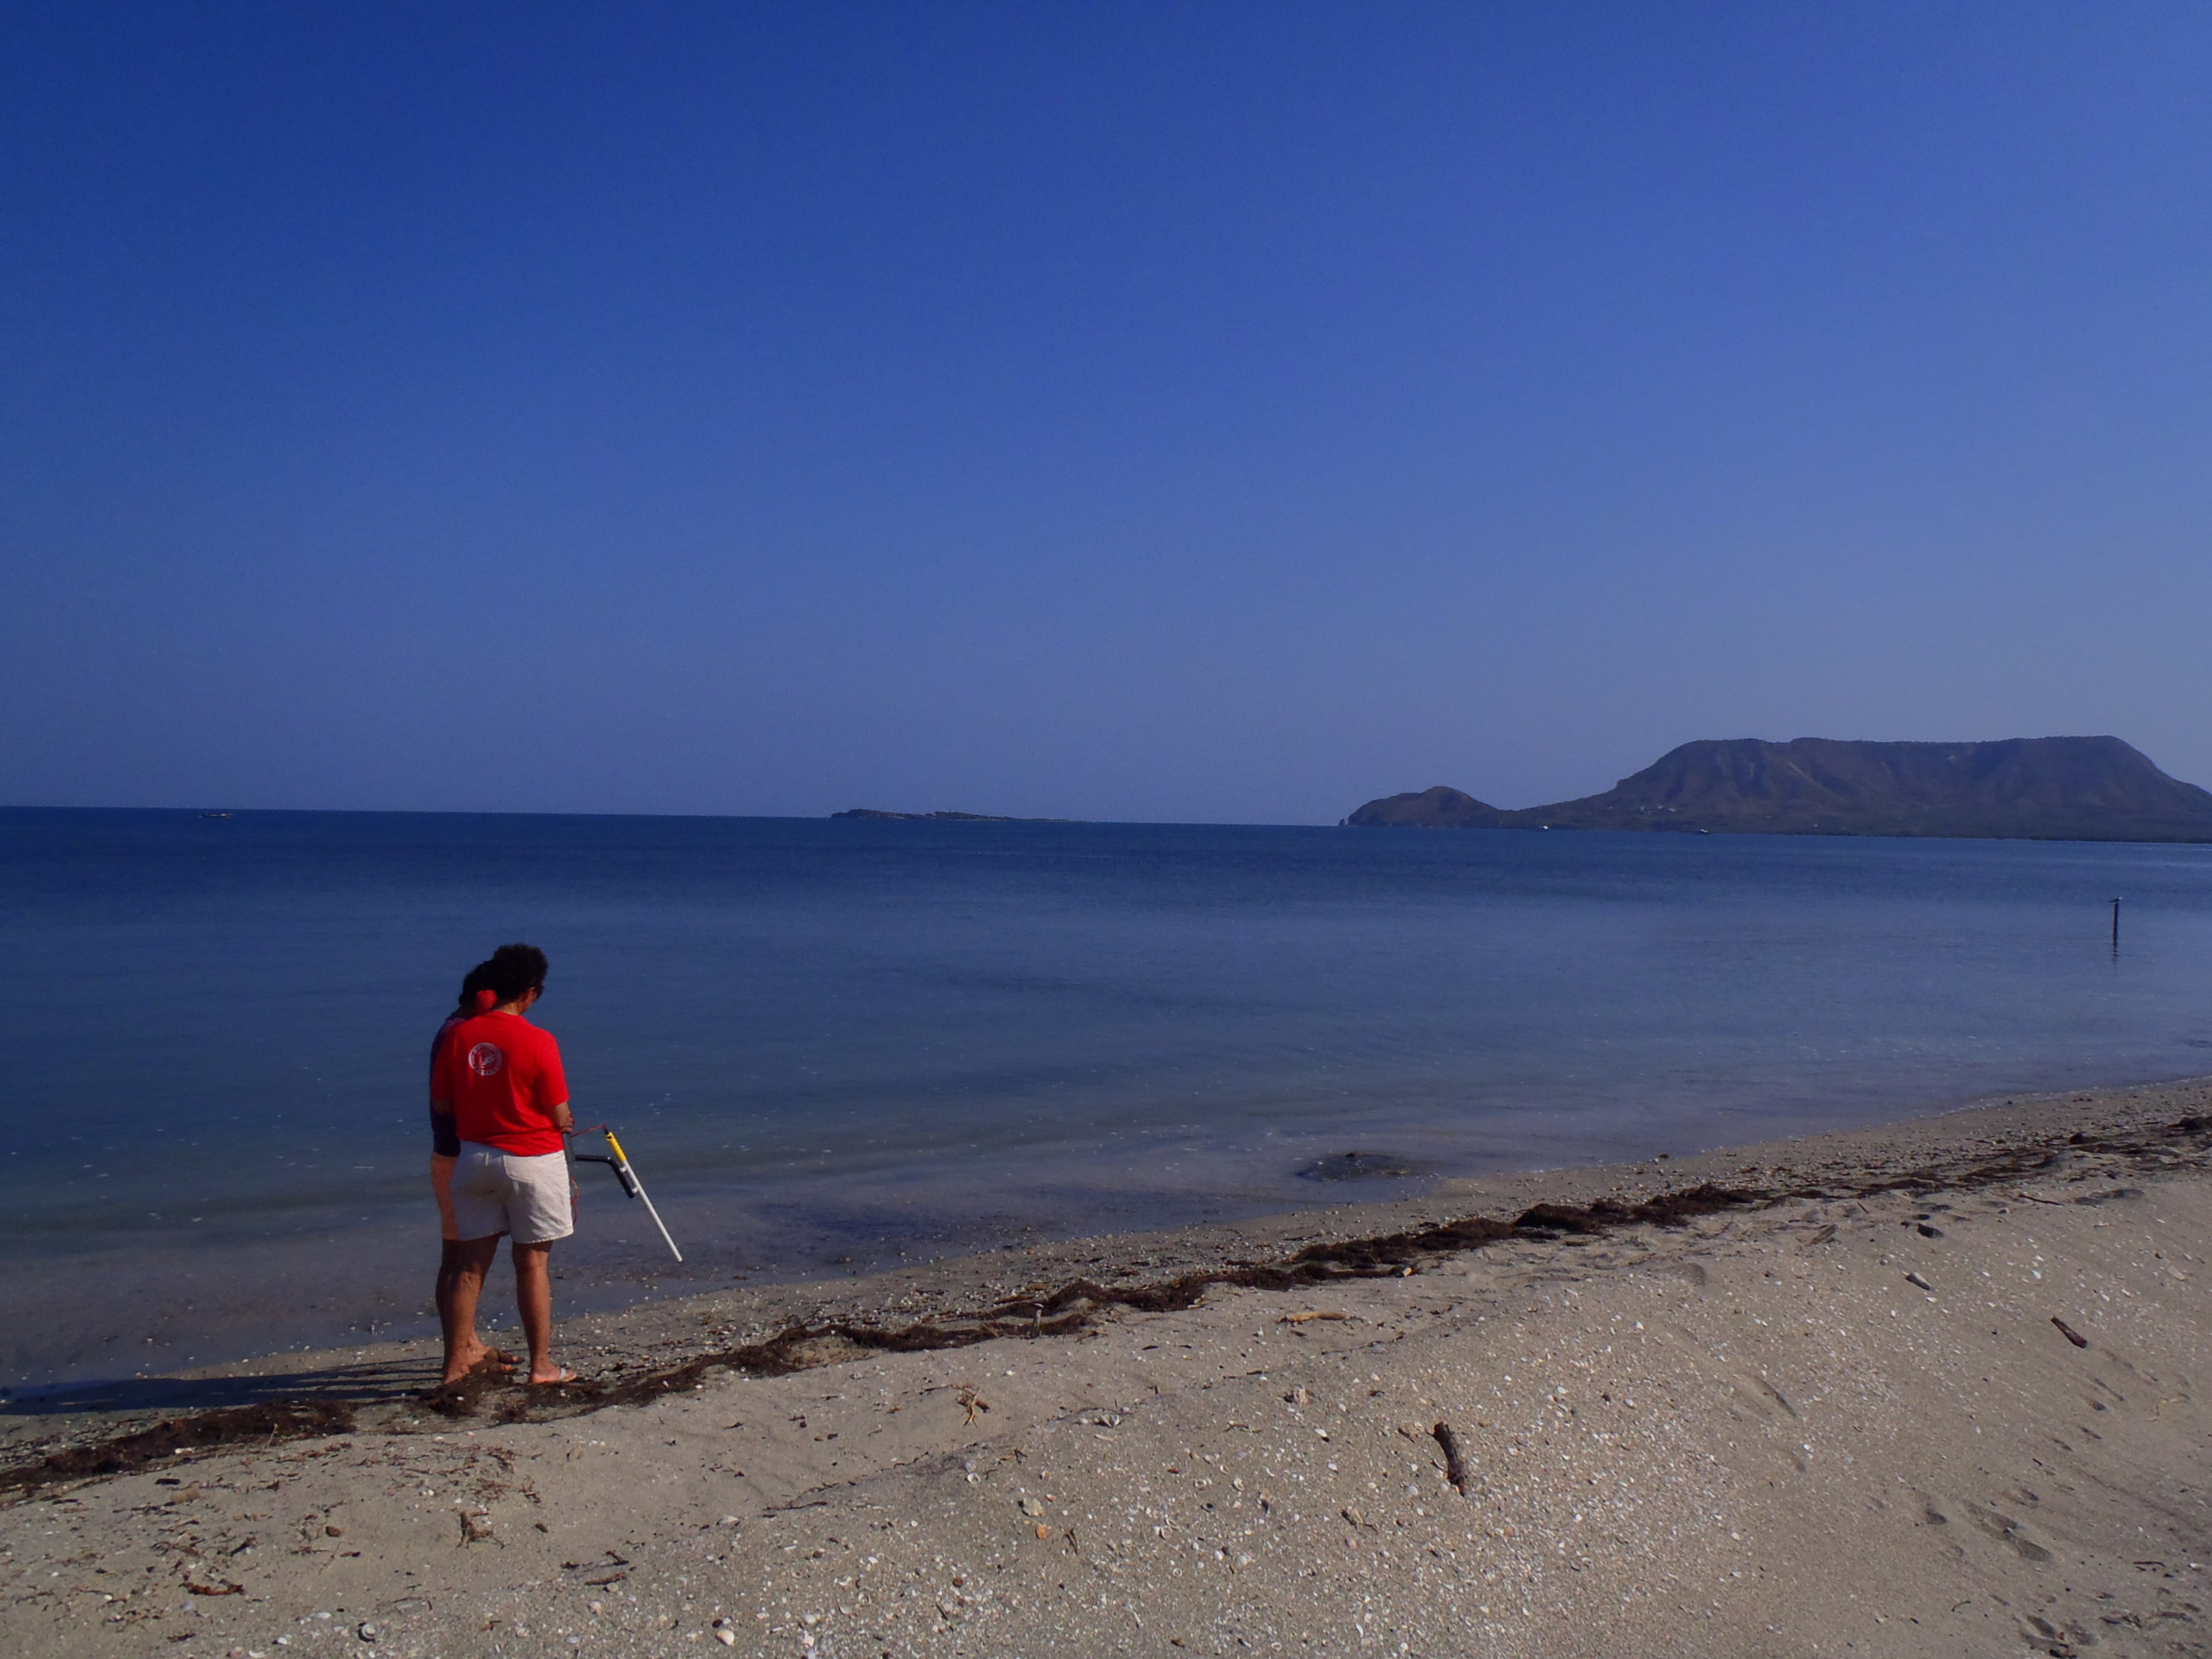 Training on the DX200 underwater gradiometer on the shores of the historic Monte Cristi Bay